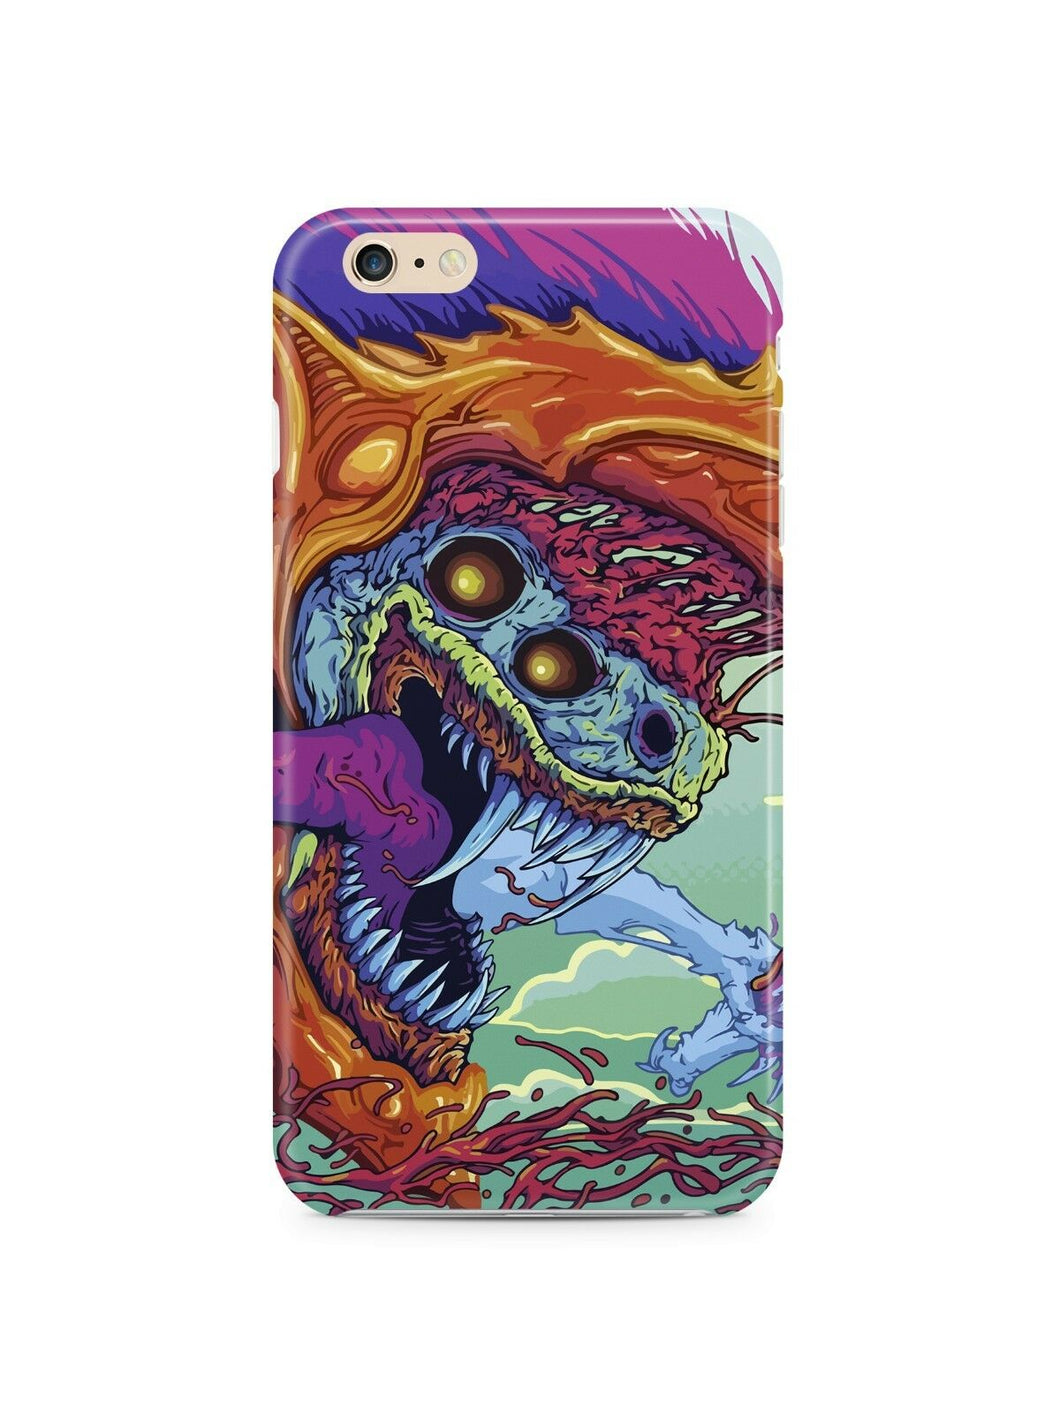 Hyper Beast Cs Go Iphone 4s 5s 5c 6S 7 8 X XS Max XR Plus Case Cover SE 16